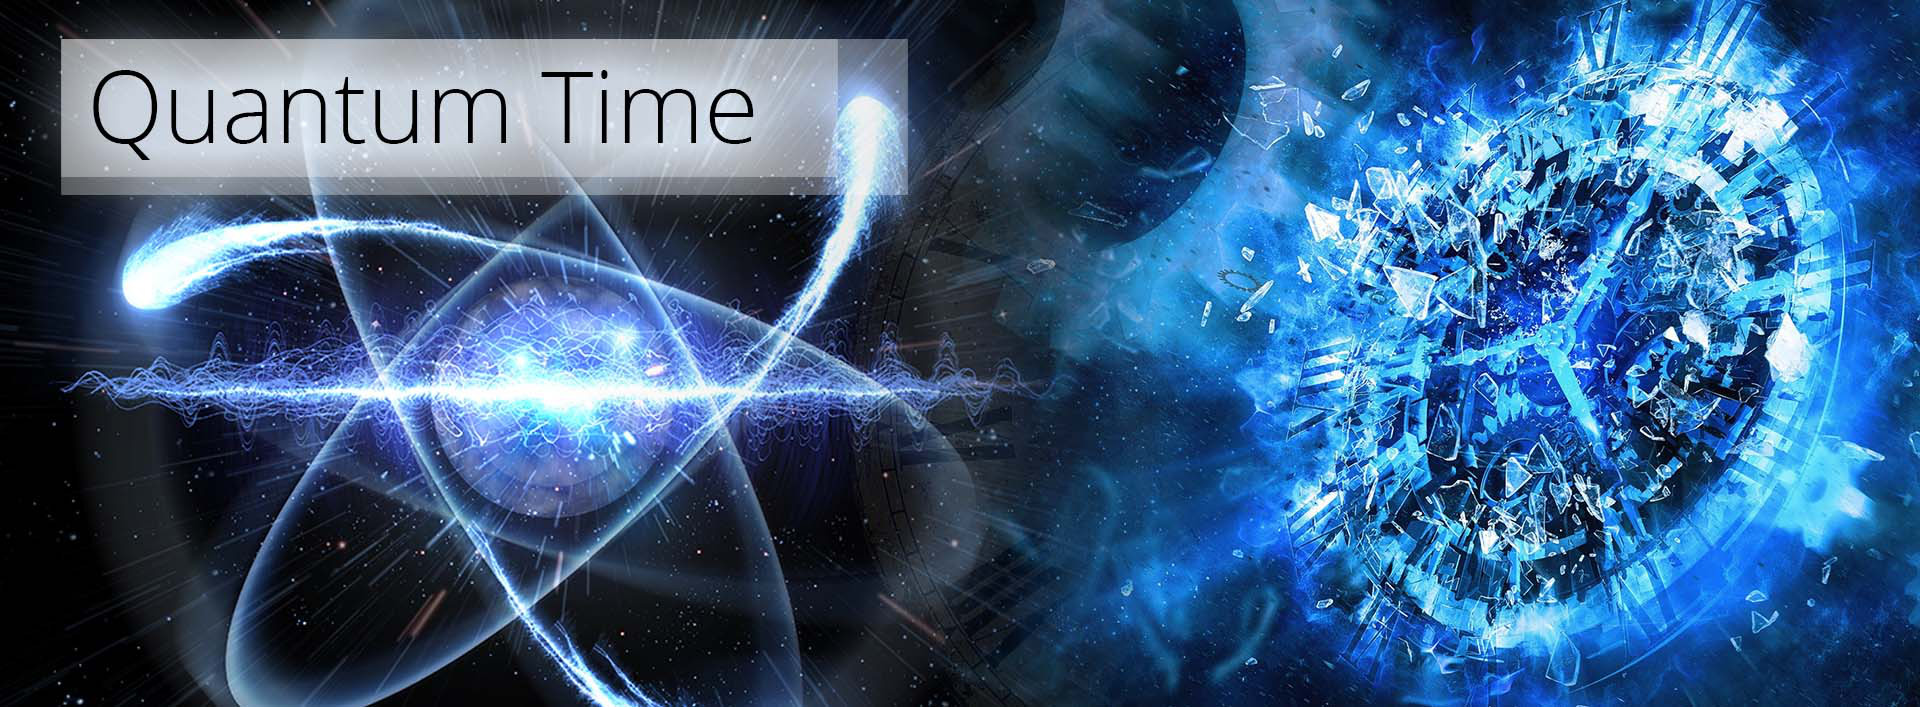 quantum time - economic theory of everything